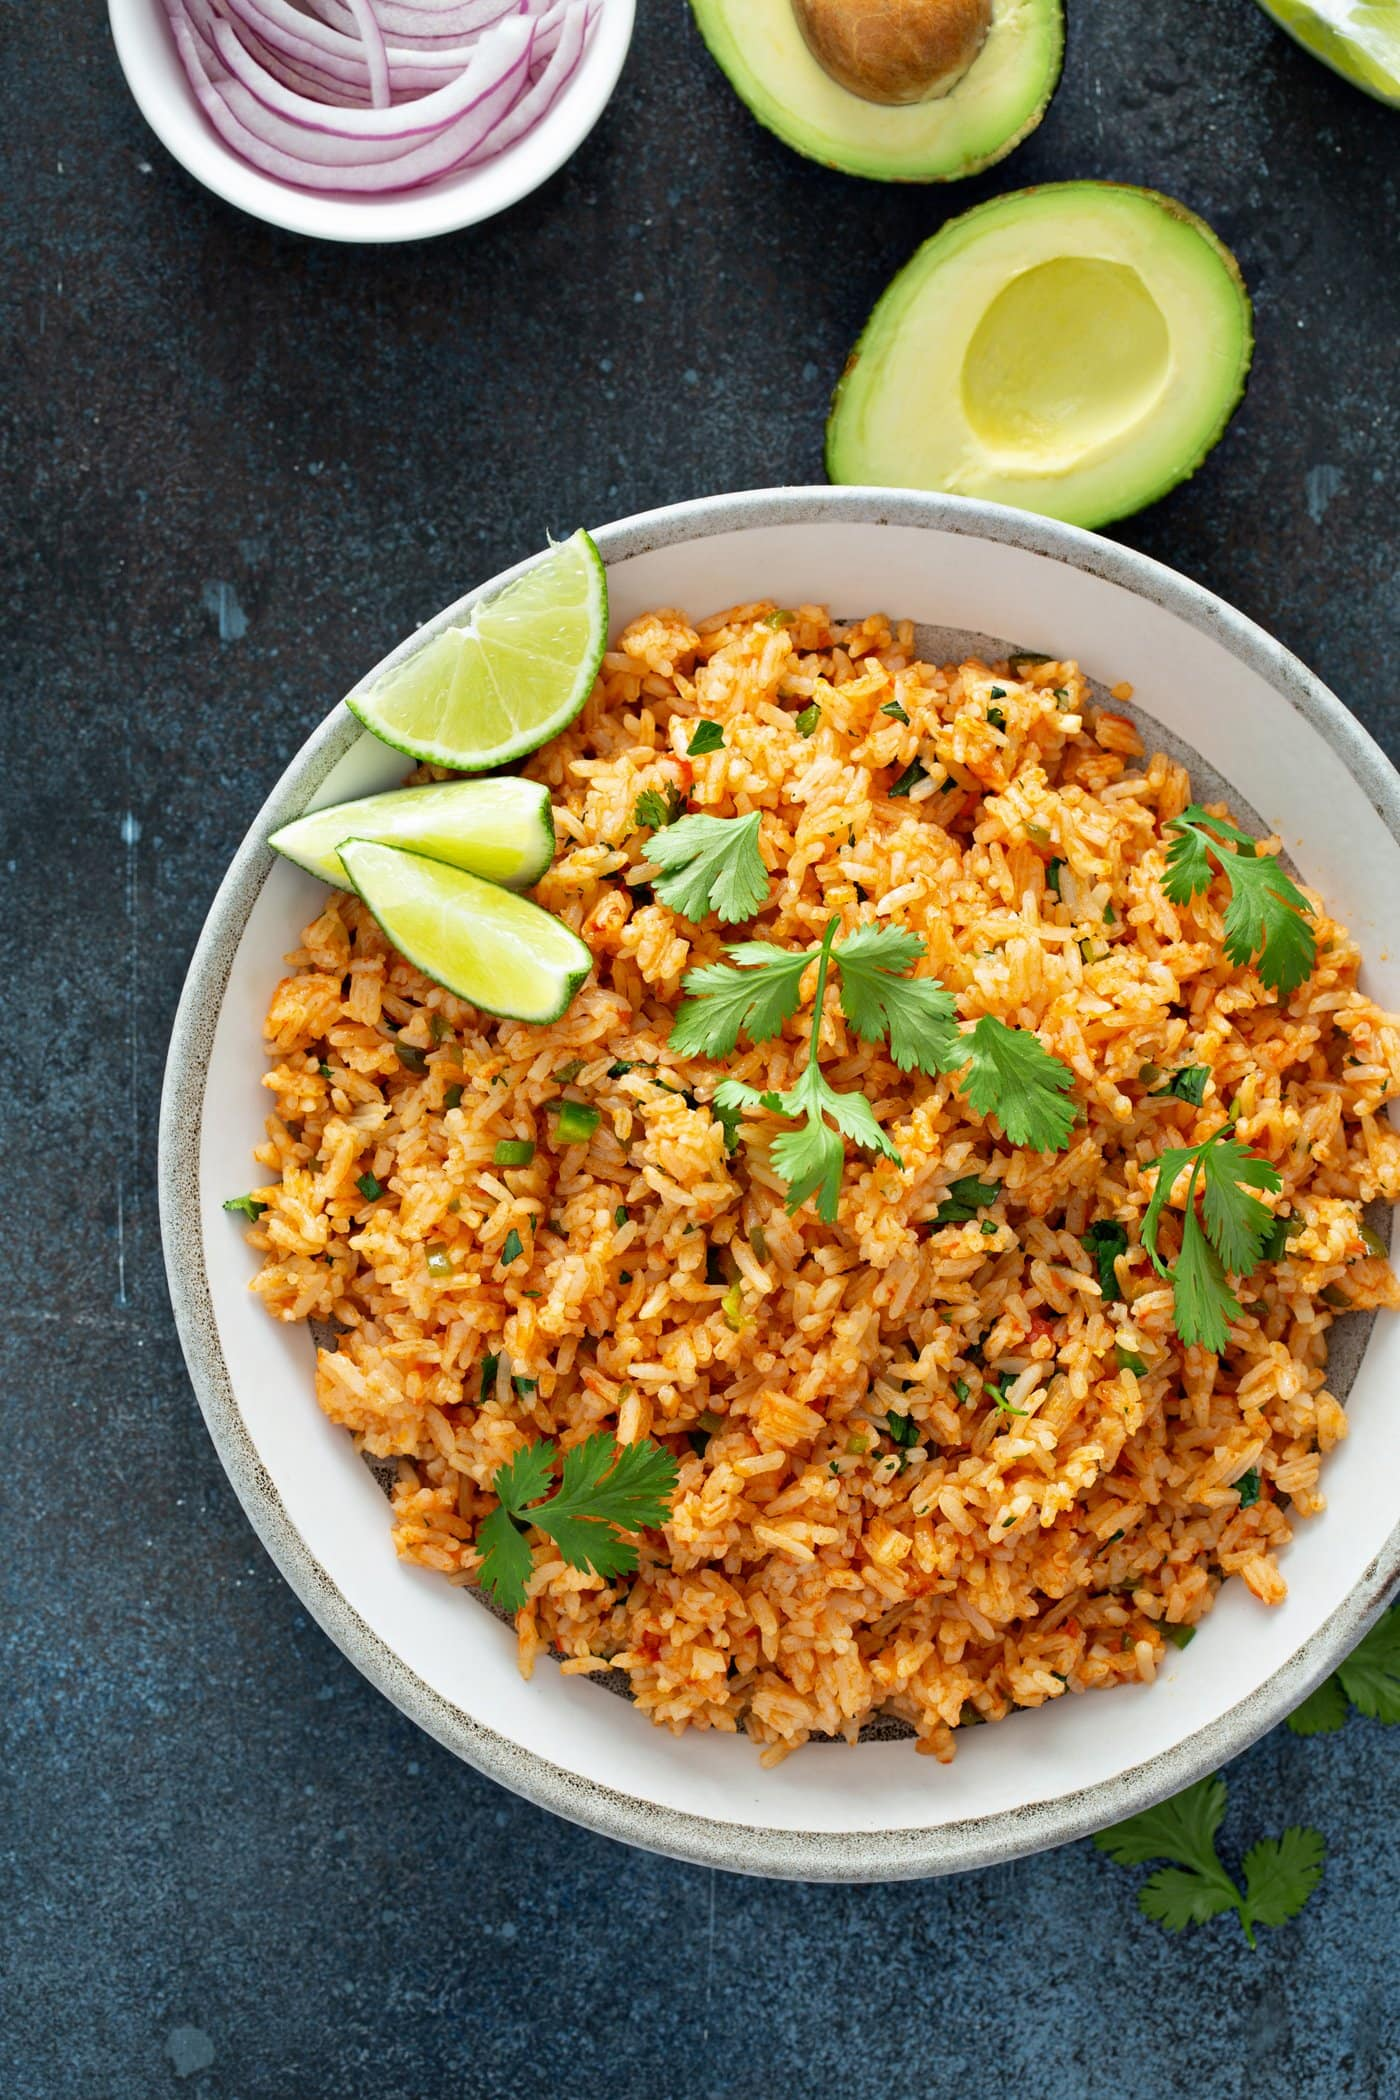 A serving bowl of Spanish rice topped with cilantro leaves and three lime wedges. There is a halved avocado in the background.